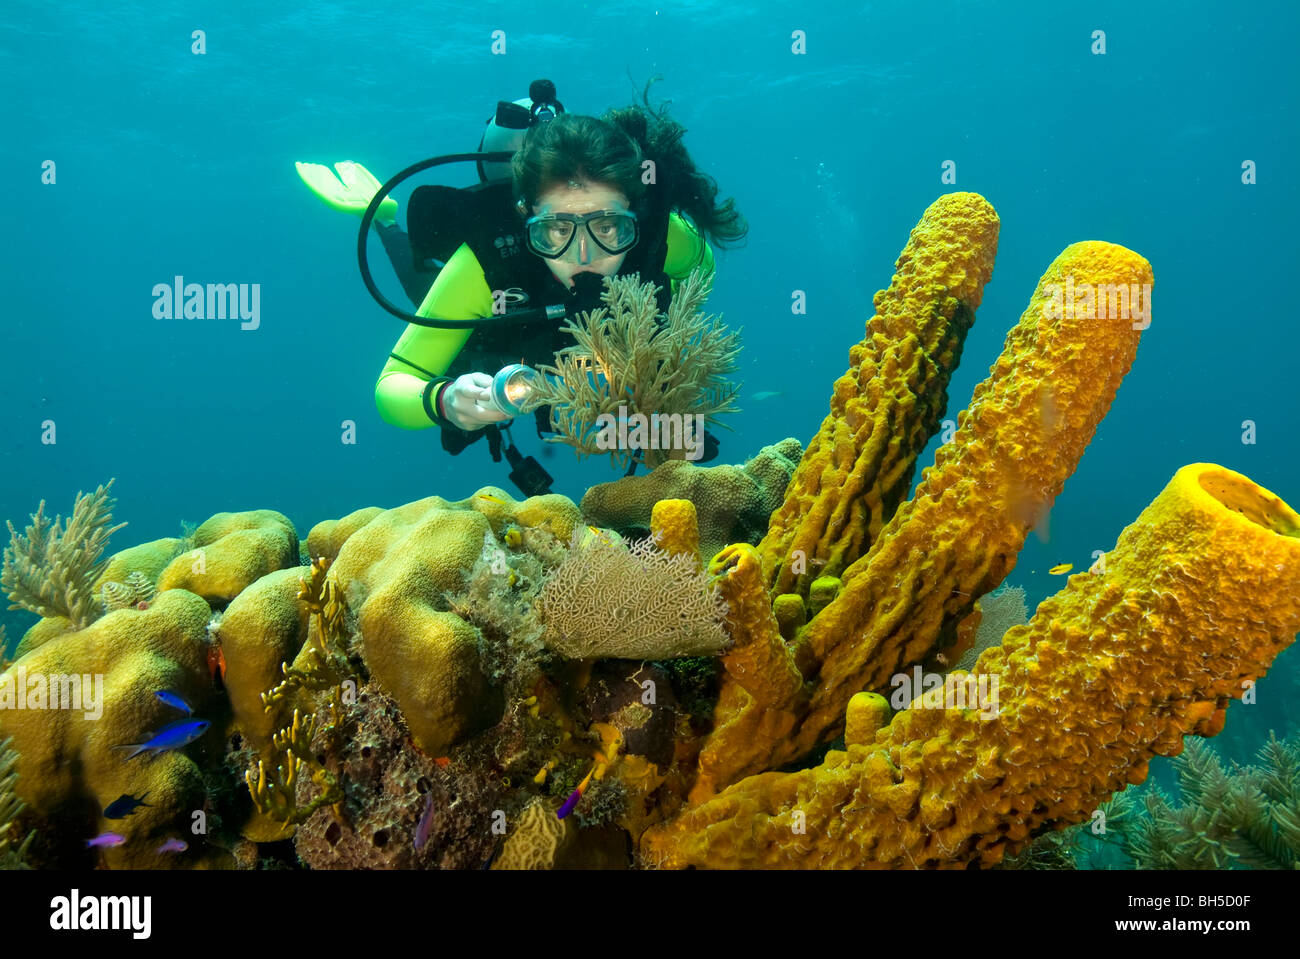 Diver exploring reef in Belize - Stock Image